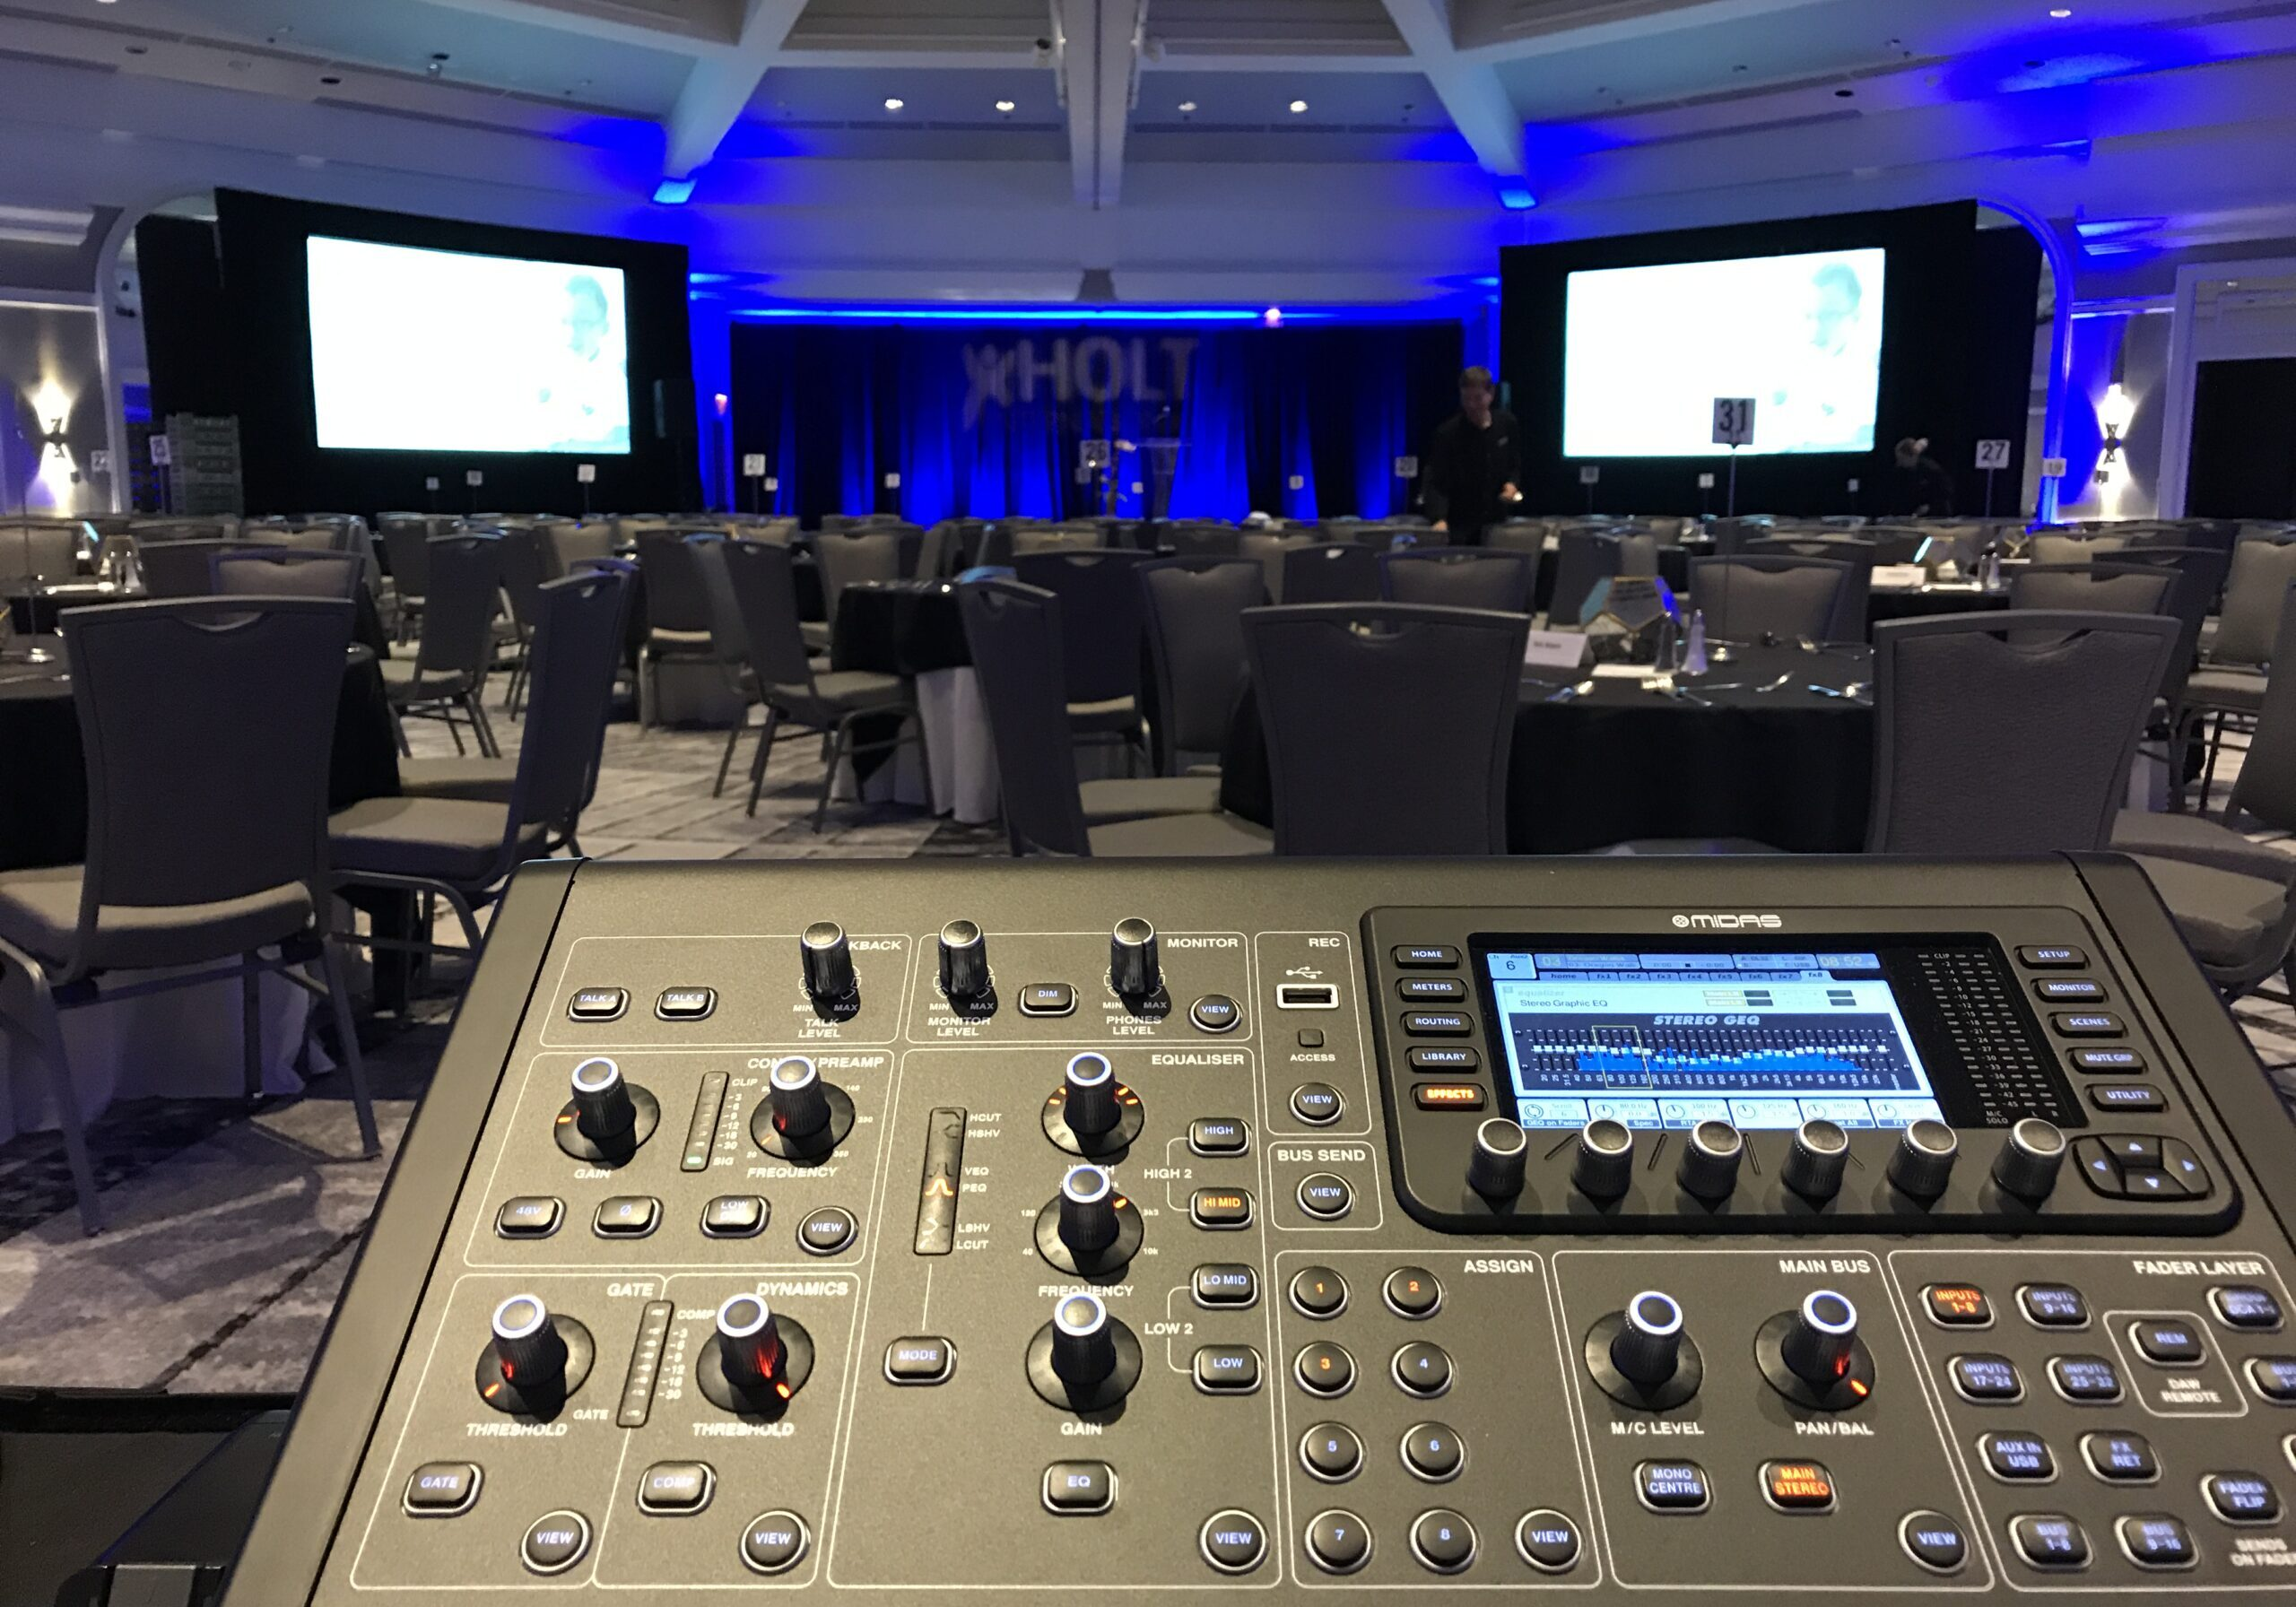 photo of a ballroom set up for an event with a mixing console in front and two large screens across the room